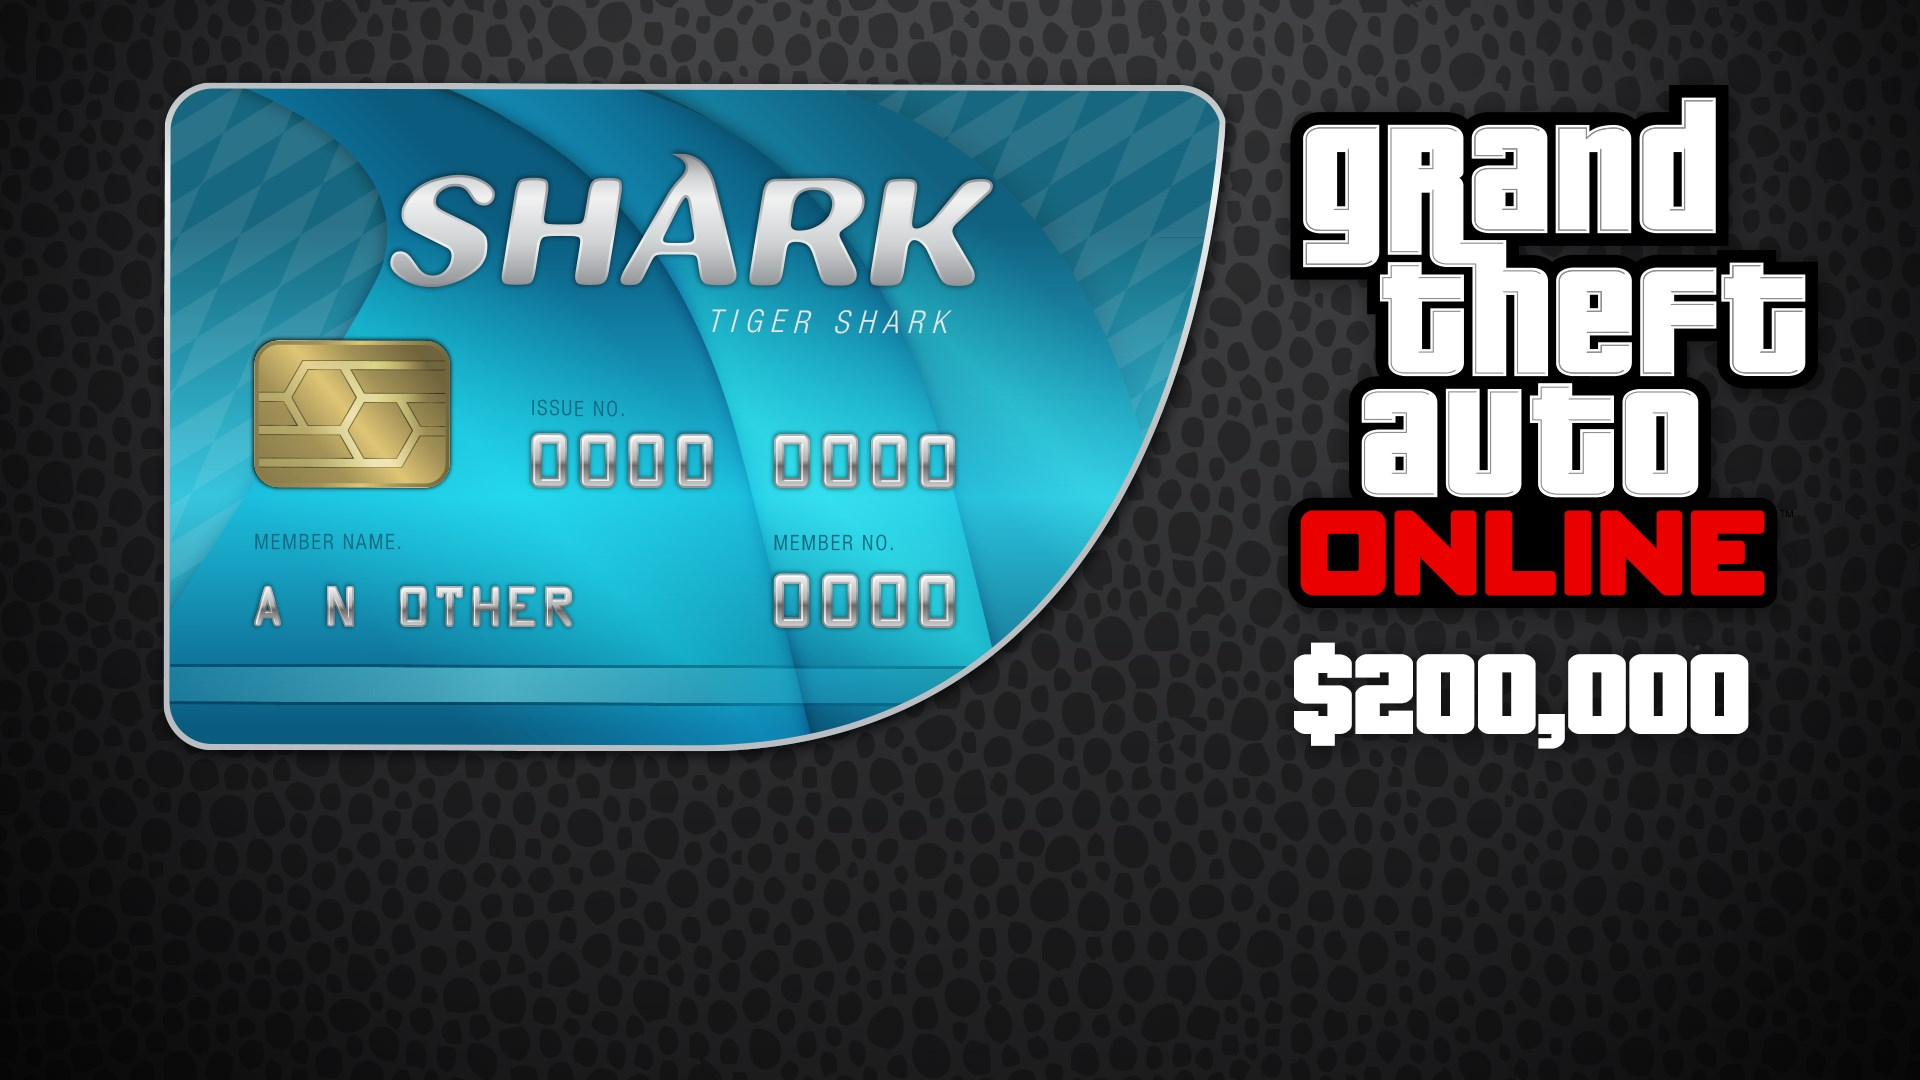 Tiger Shark Cash Card